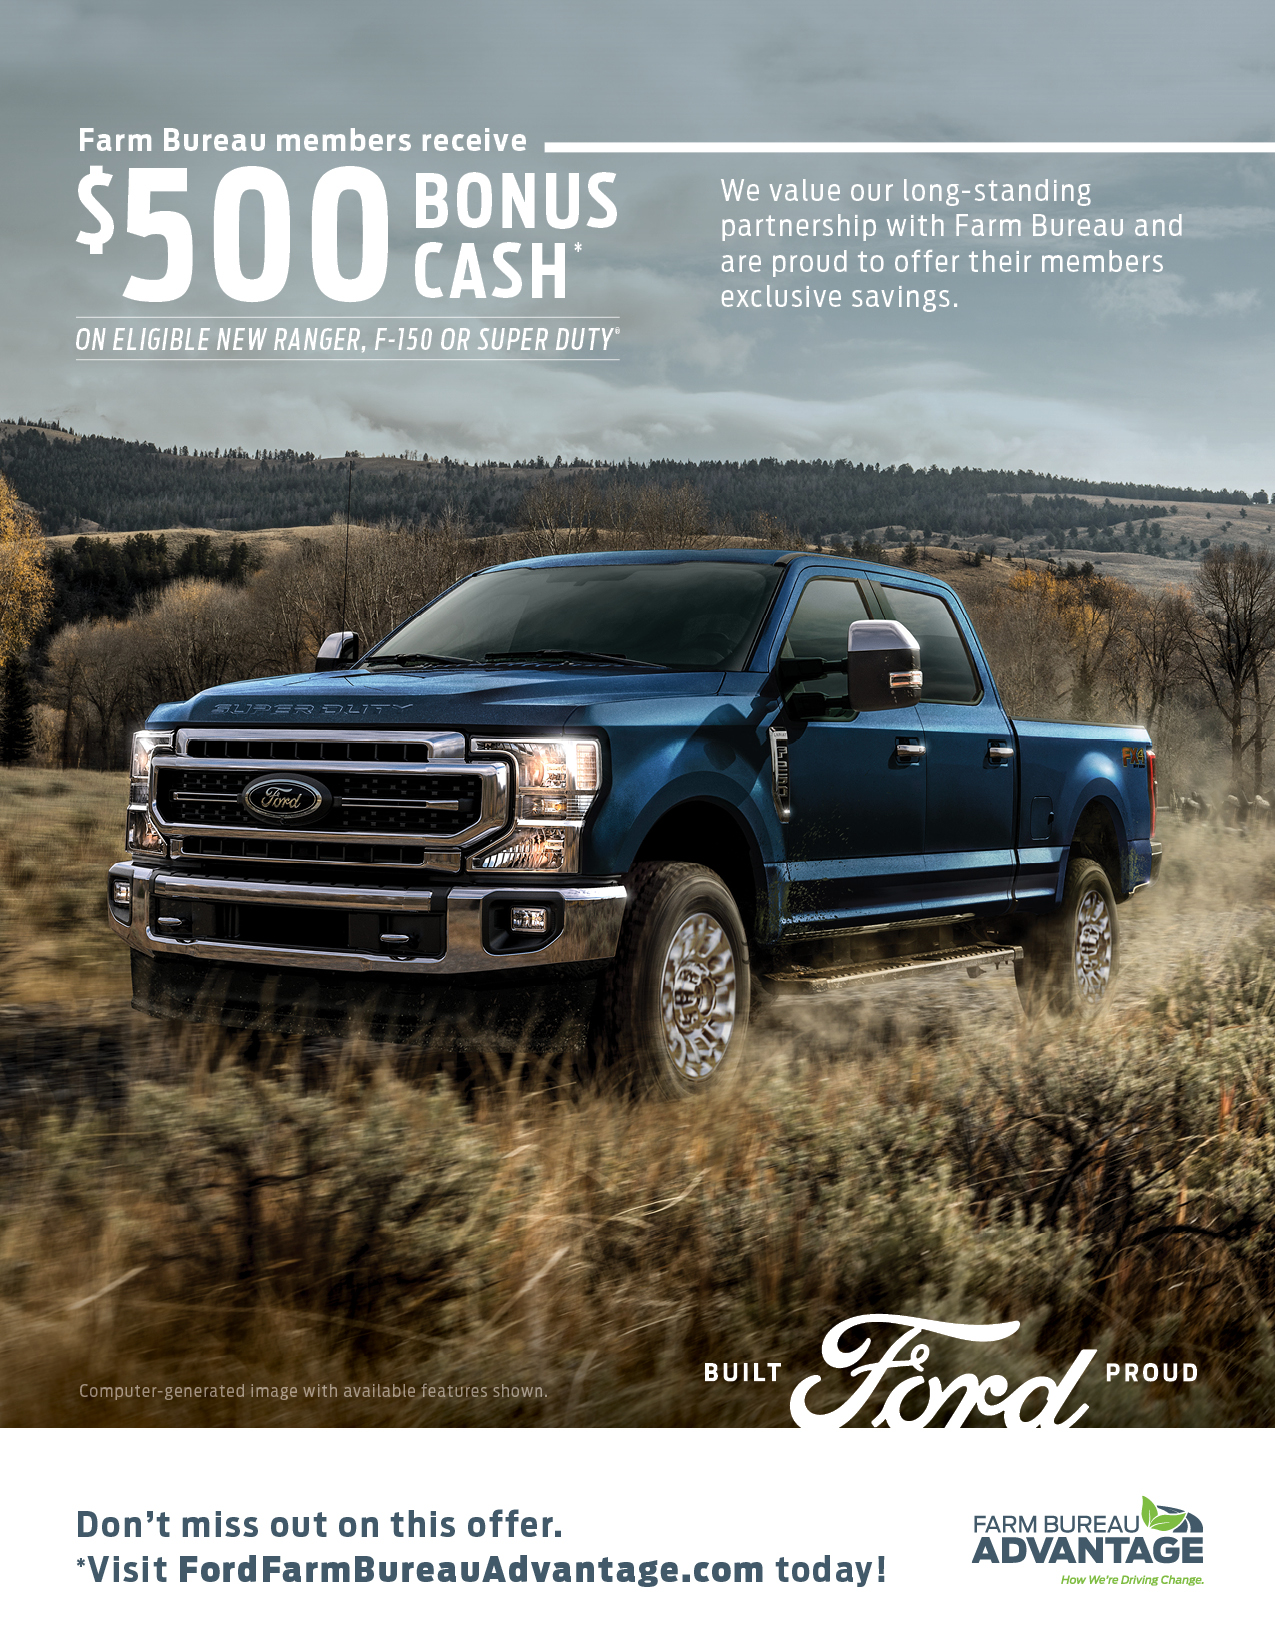 Farm Bureau Bonus Cash is exclusively for active Farm Bureau members who are residents of the United States. $500 Bonus Cash on eligible new 2020/2021/2022 Ford Ranger, F-150 or Super Duty